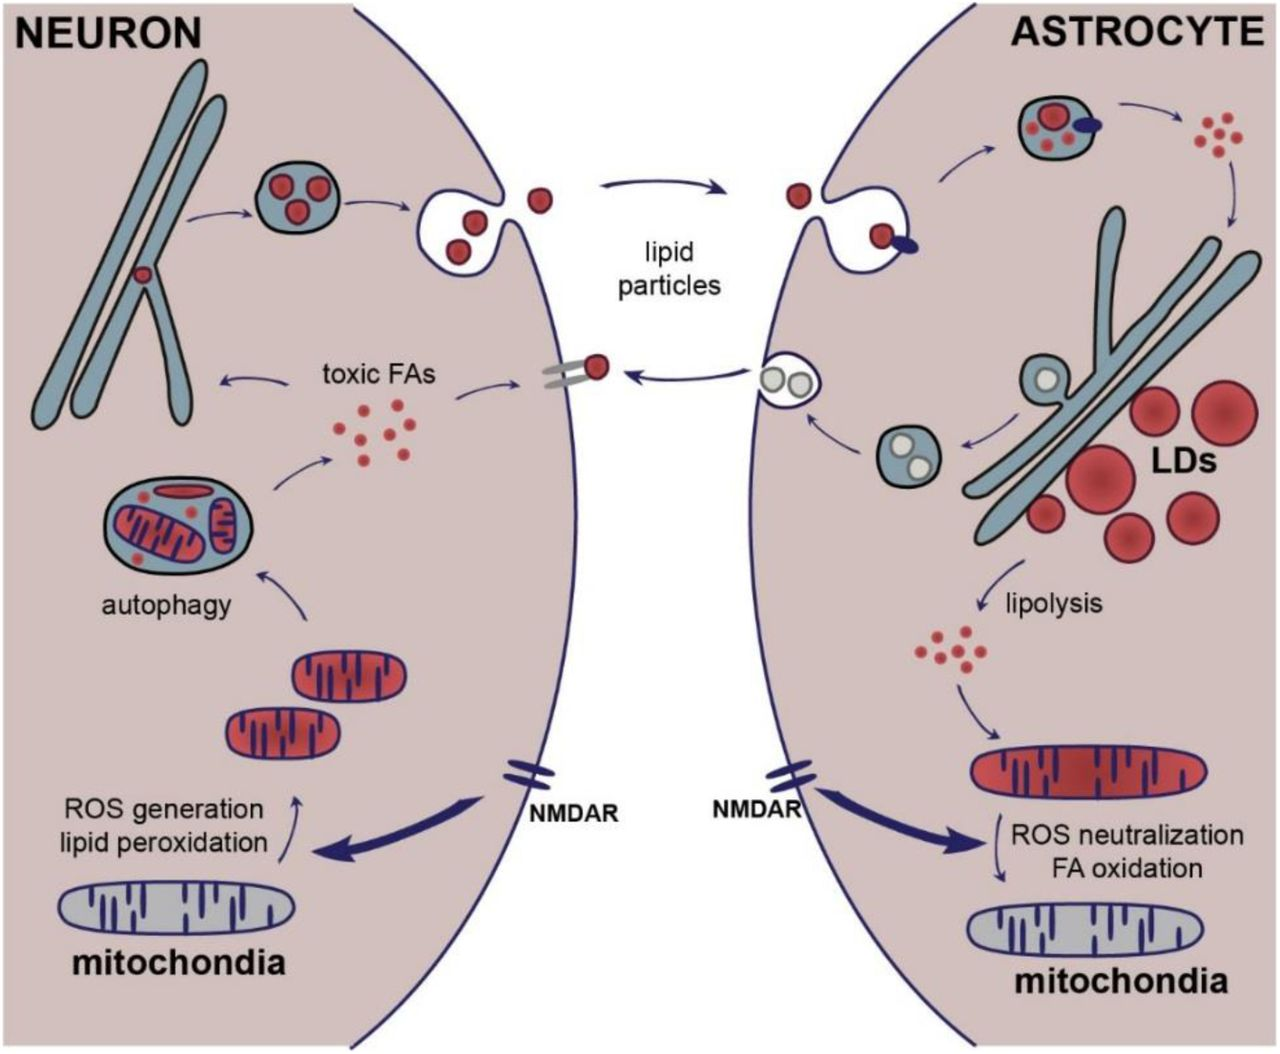 Neuron-astrocyte metabolic coupling during neuronal